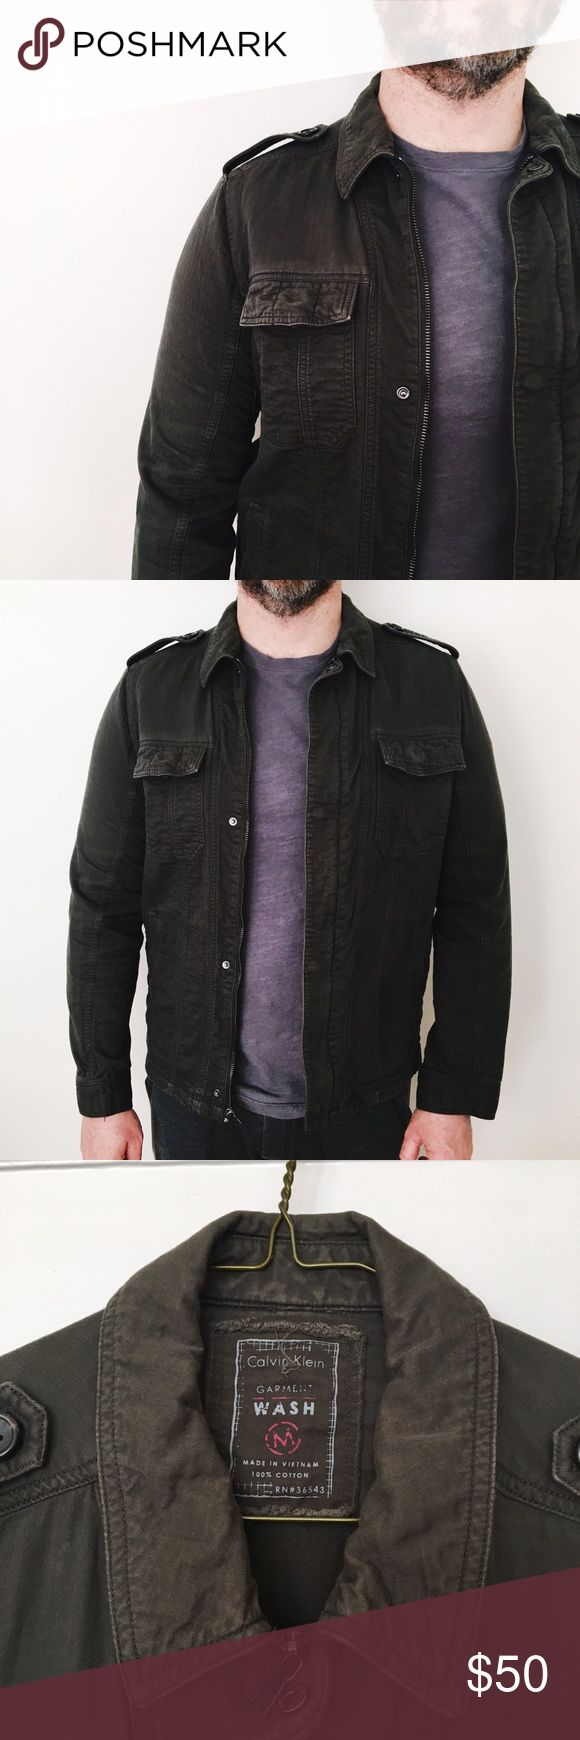 Calvin Klein Military Jacket (Field Jacket) Good condition and super on trend, military / utility / field jacket style. Some distressing back, pictured. Calvin Klein Jackets & Coats Military & Field